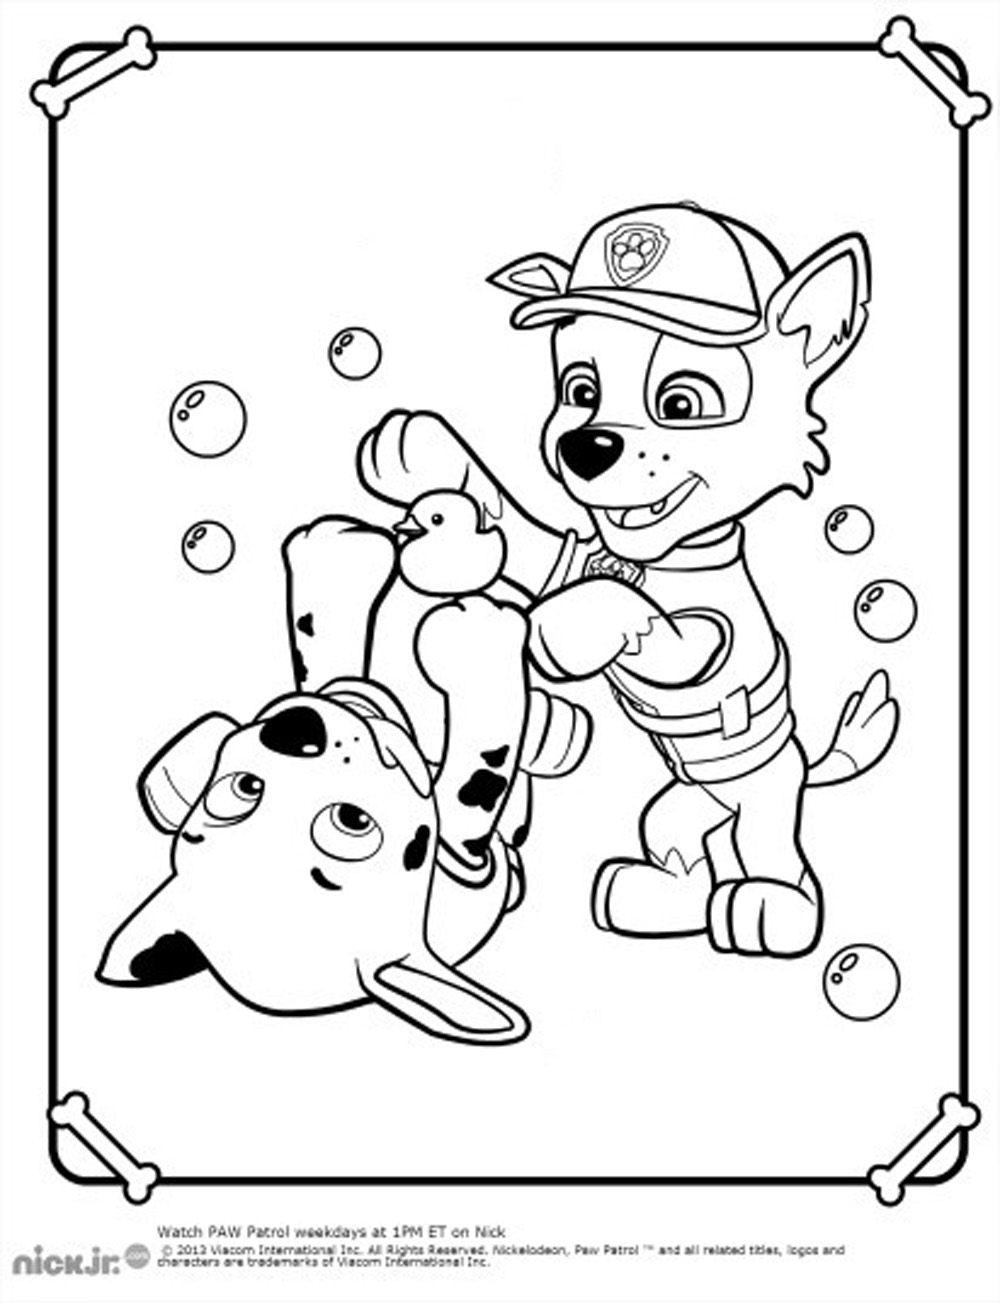 paw patrol coloring pages chase paw patrol coloring pages to download and print for free patrol pages paw coloring